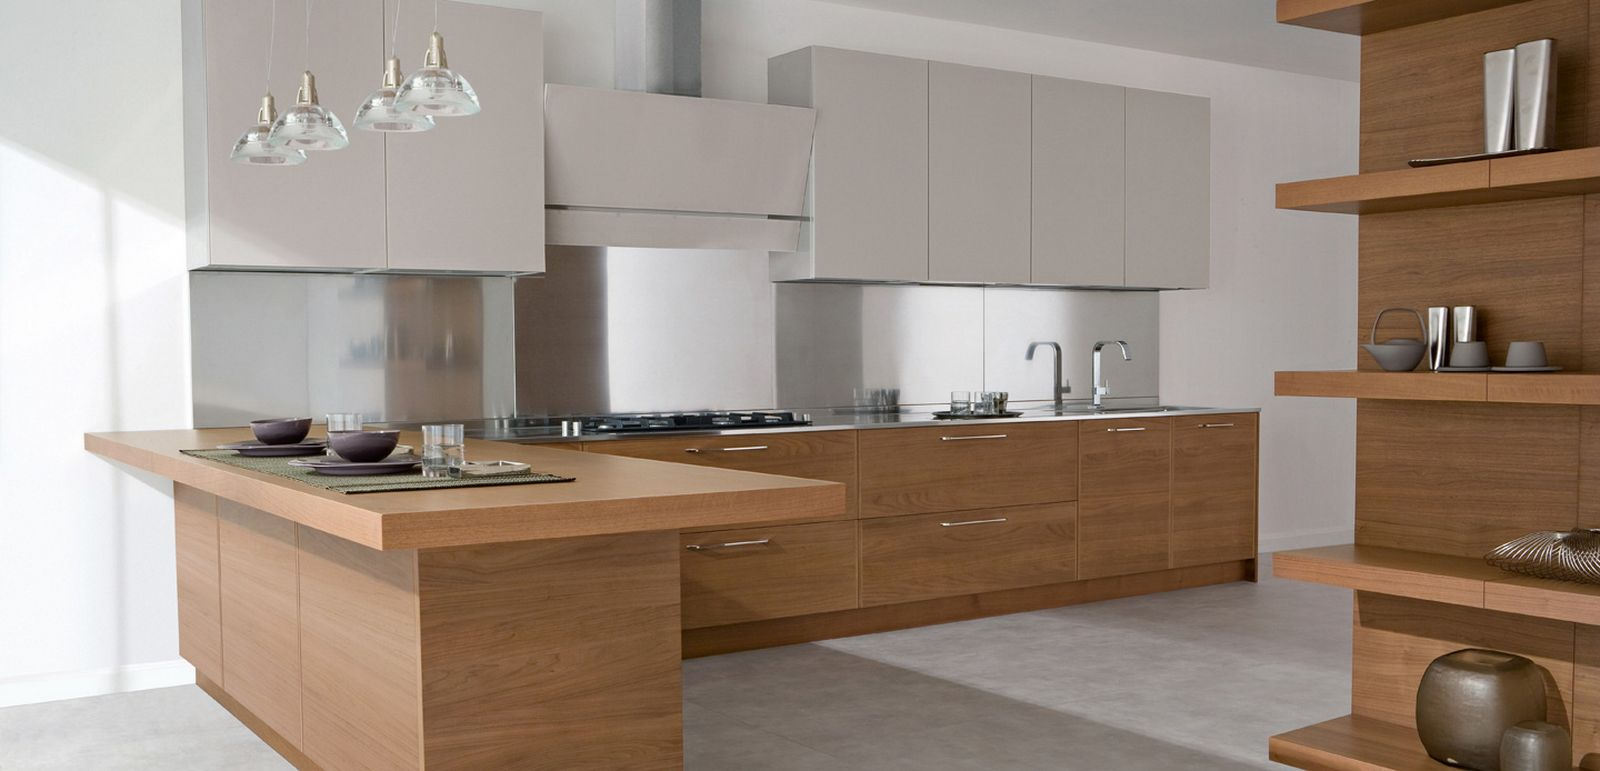 6 Kitchen Remodel Hacks You Need to Know